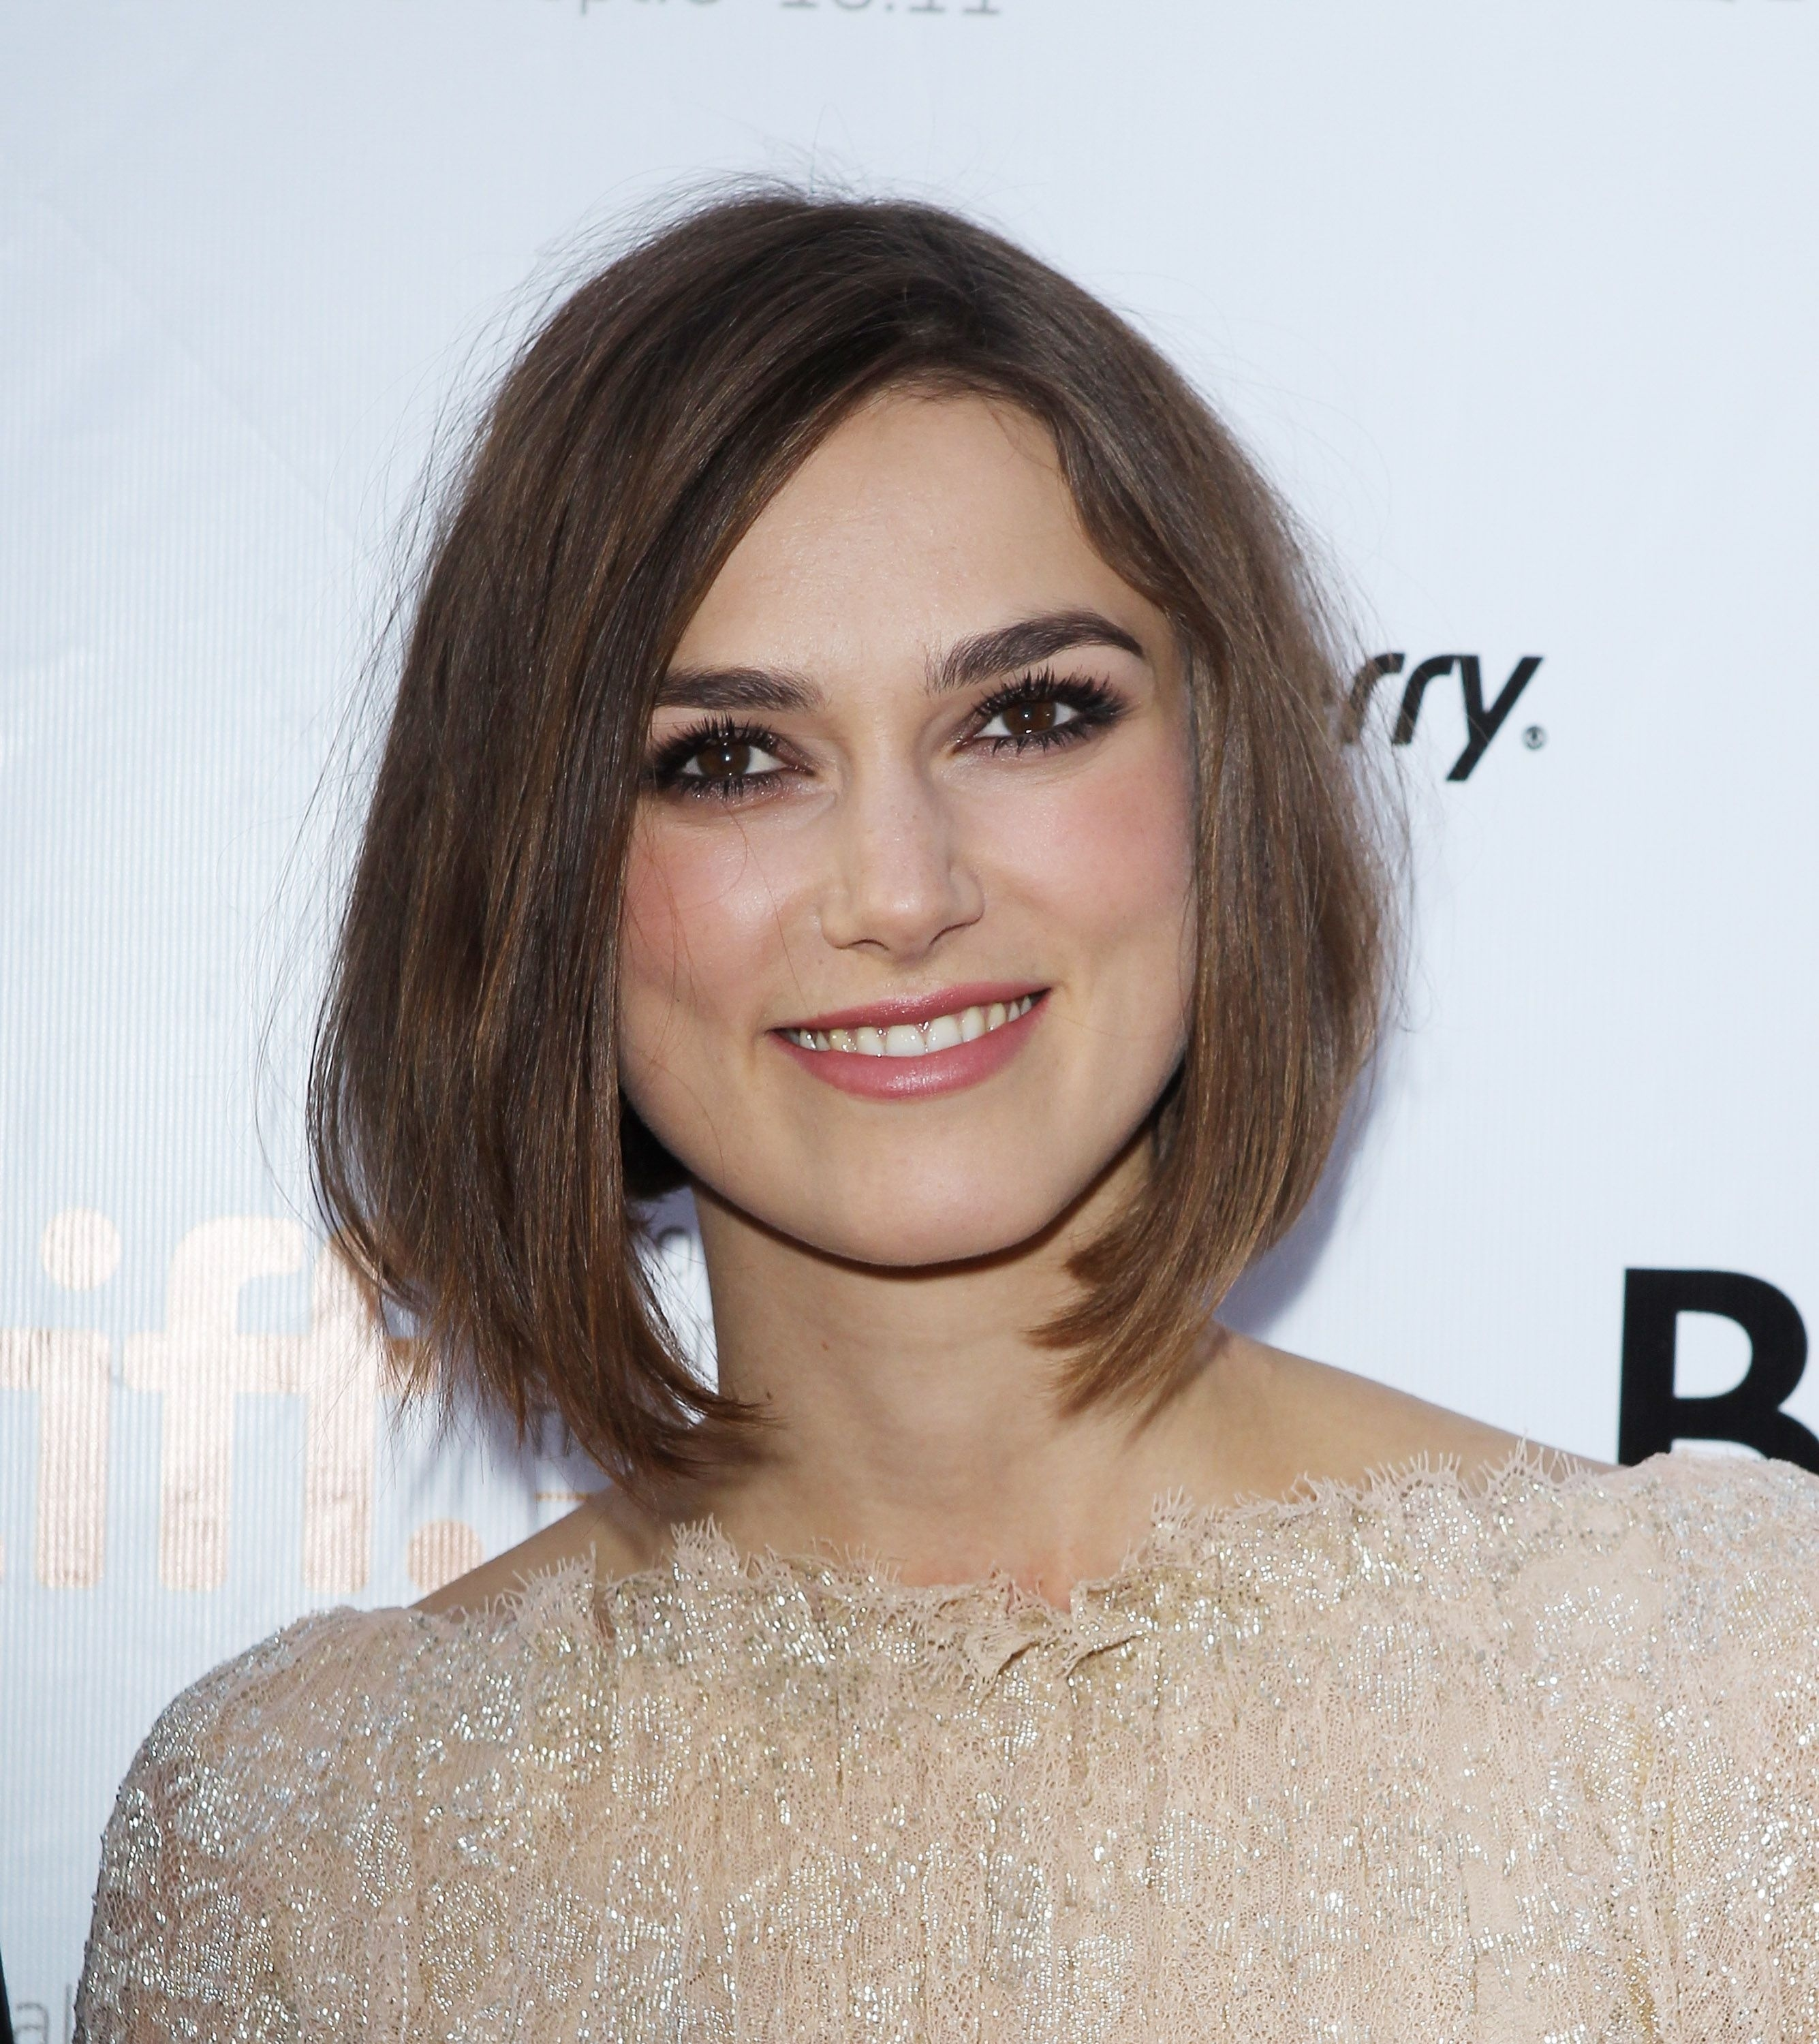 Haircuts For Women With Square Jaw - Wavy Haircut